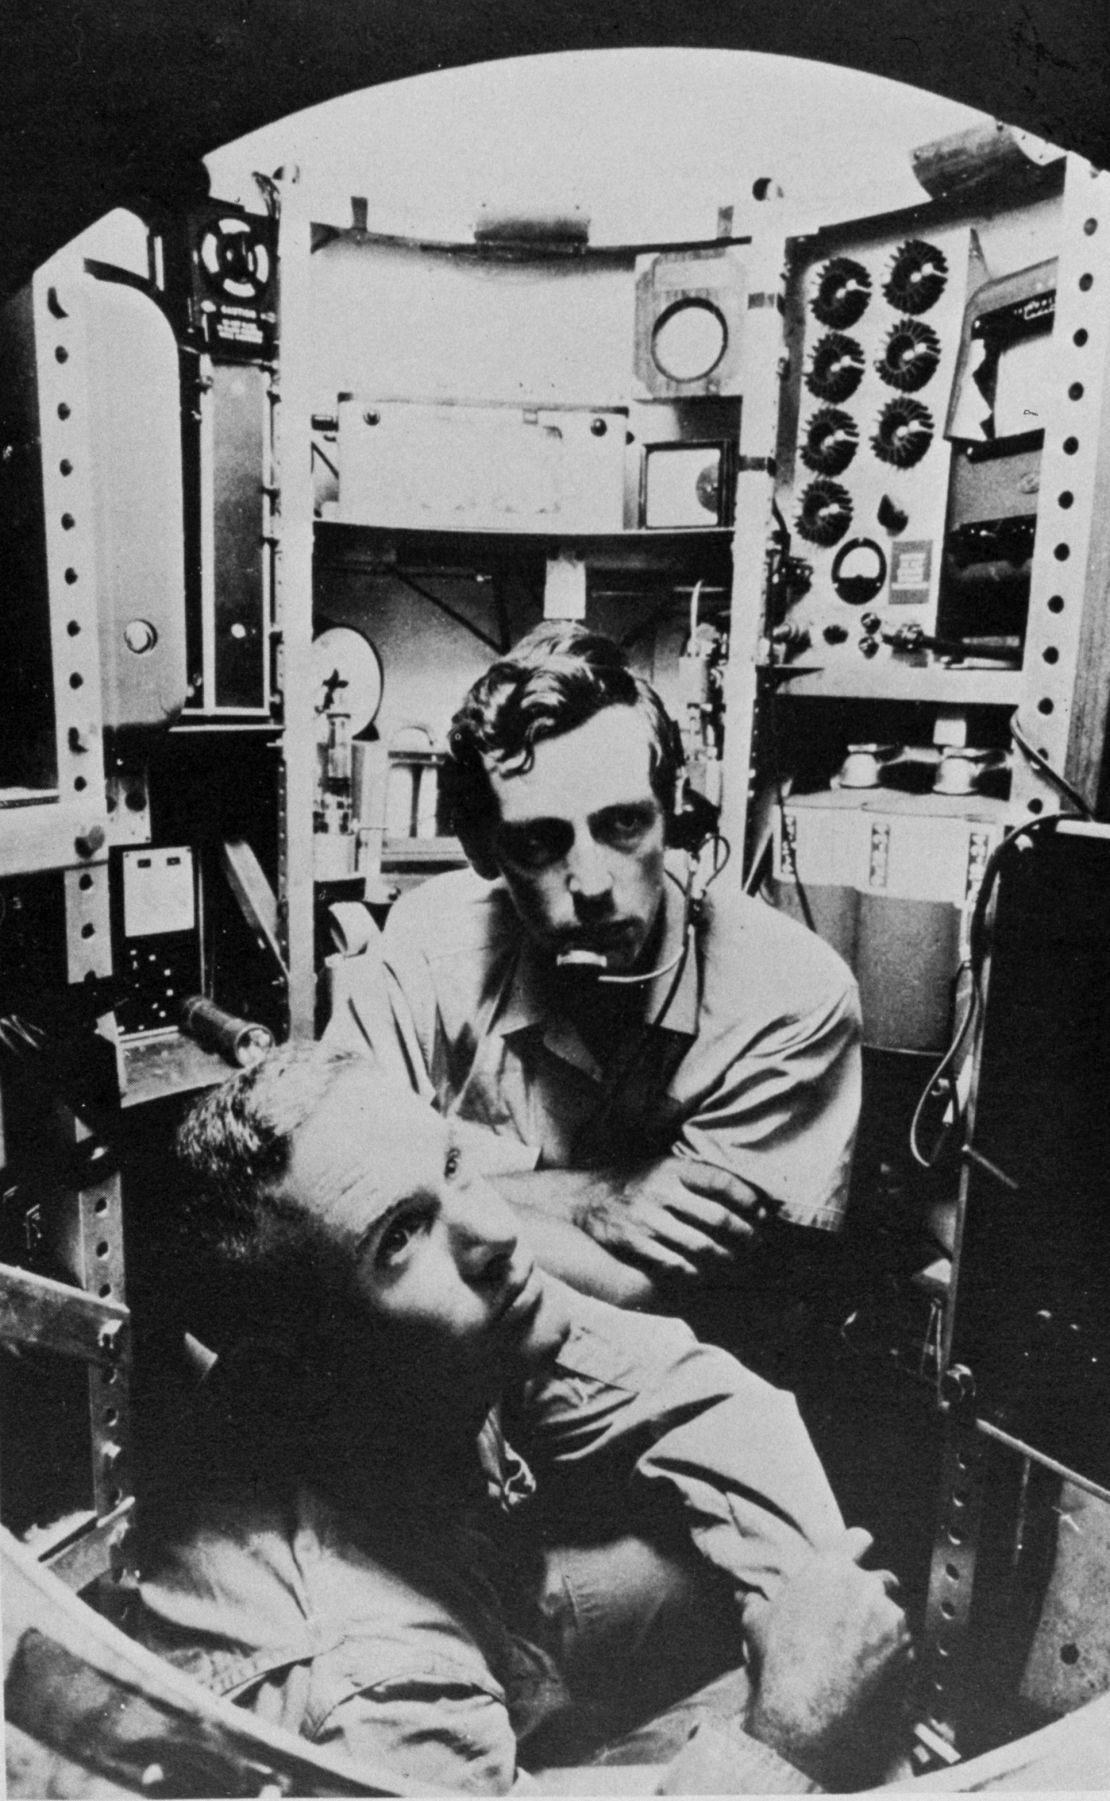 CAPTAIN WALSH AND JACQUES PICCARD